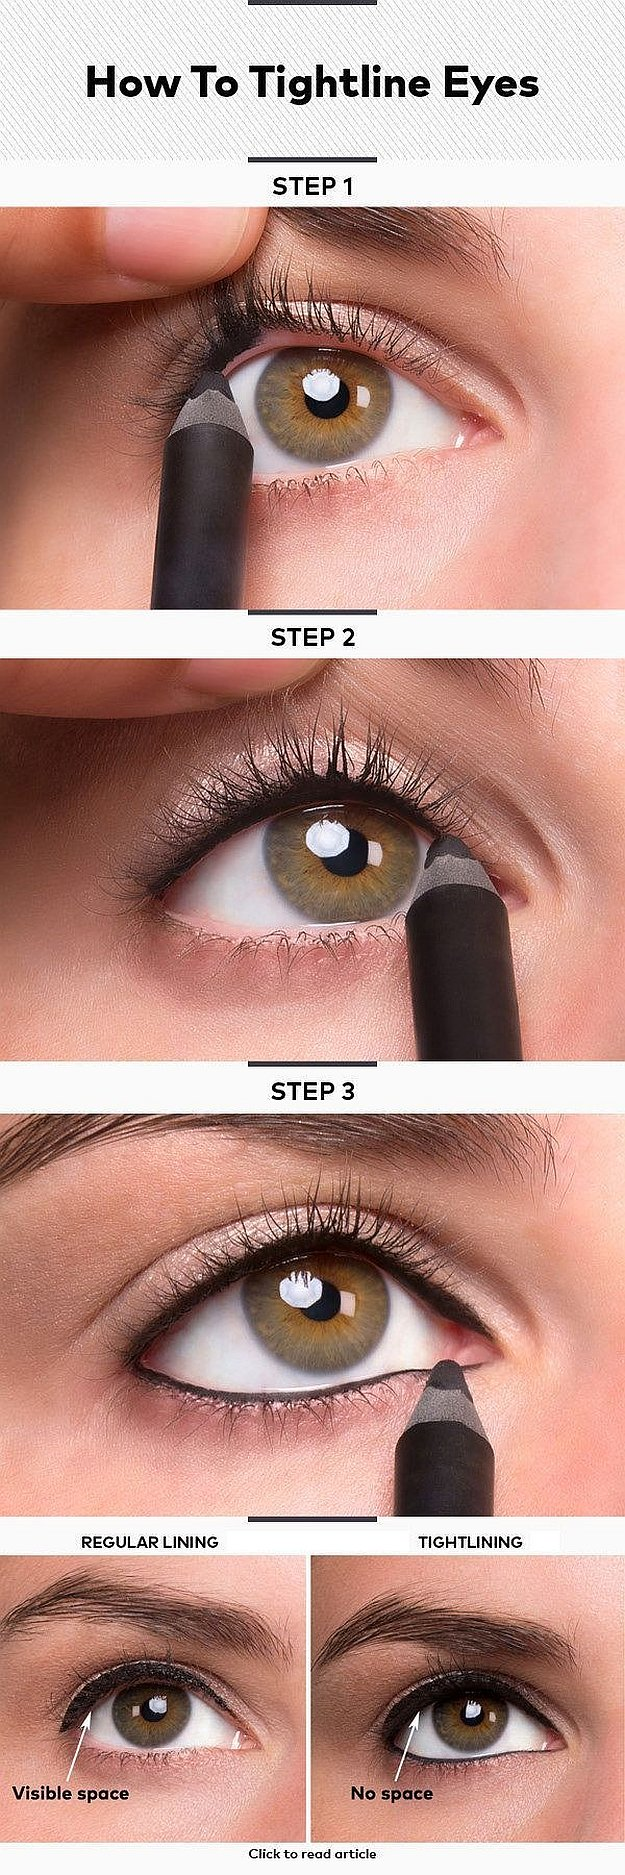 How-to-Tightline-Eyes